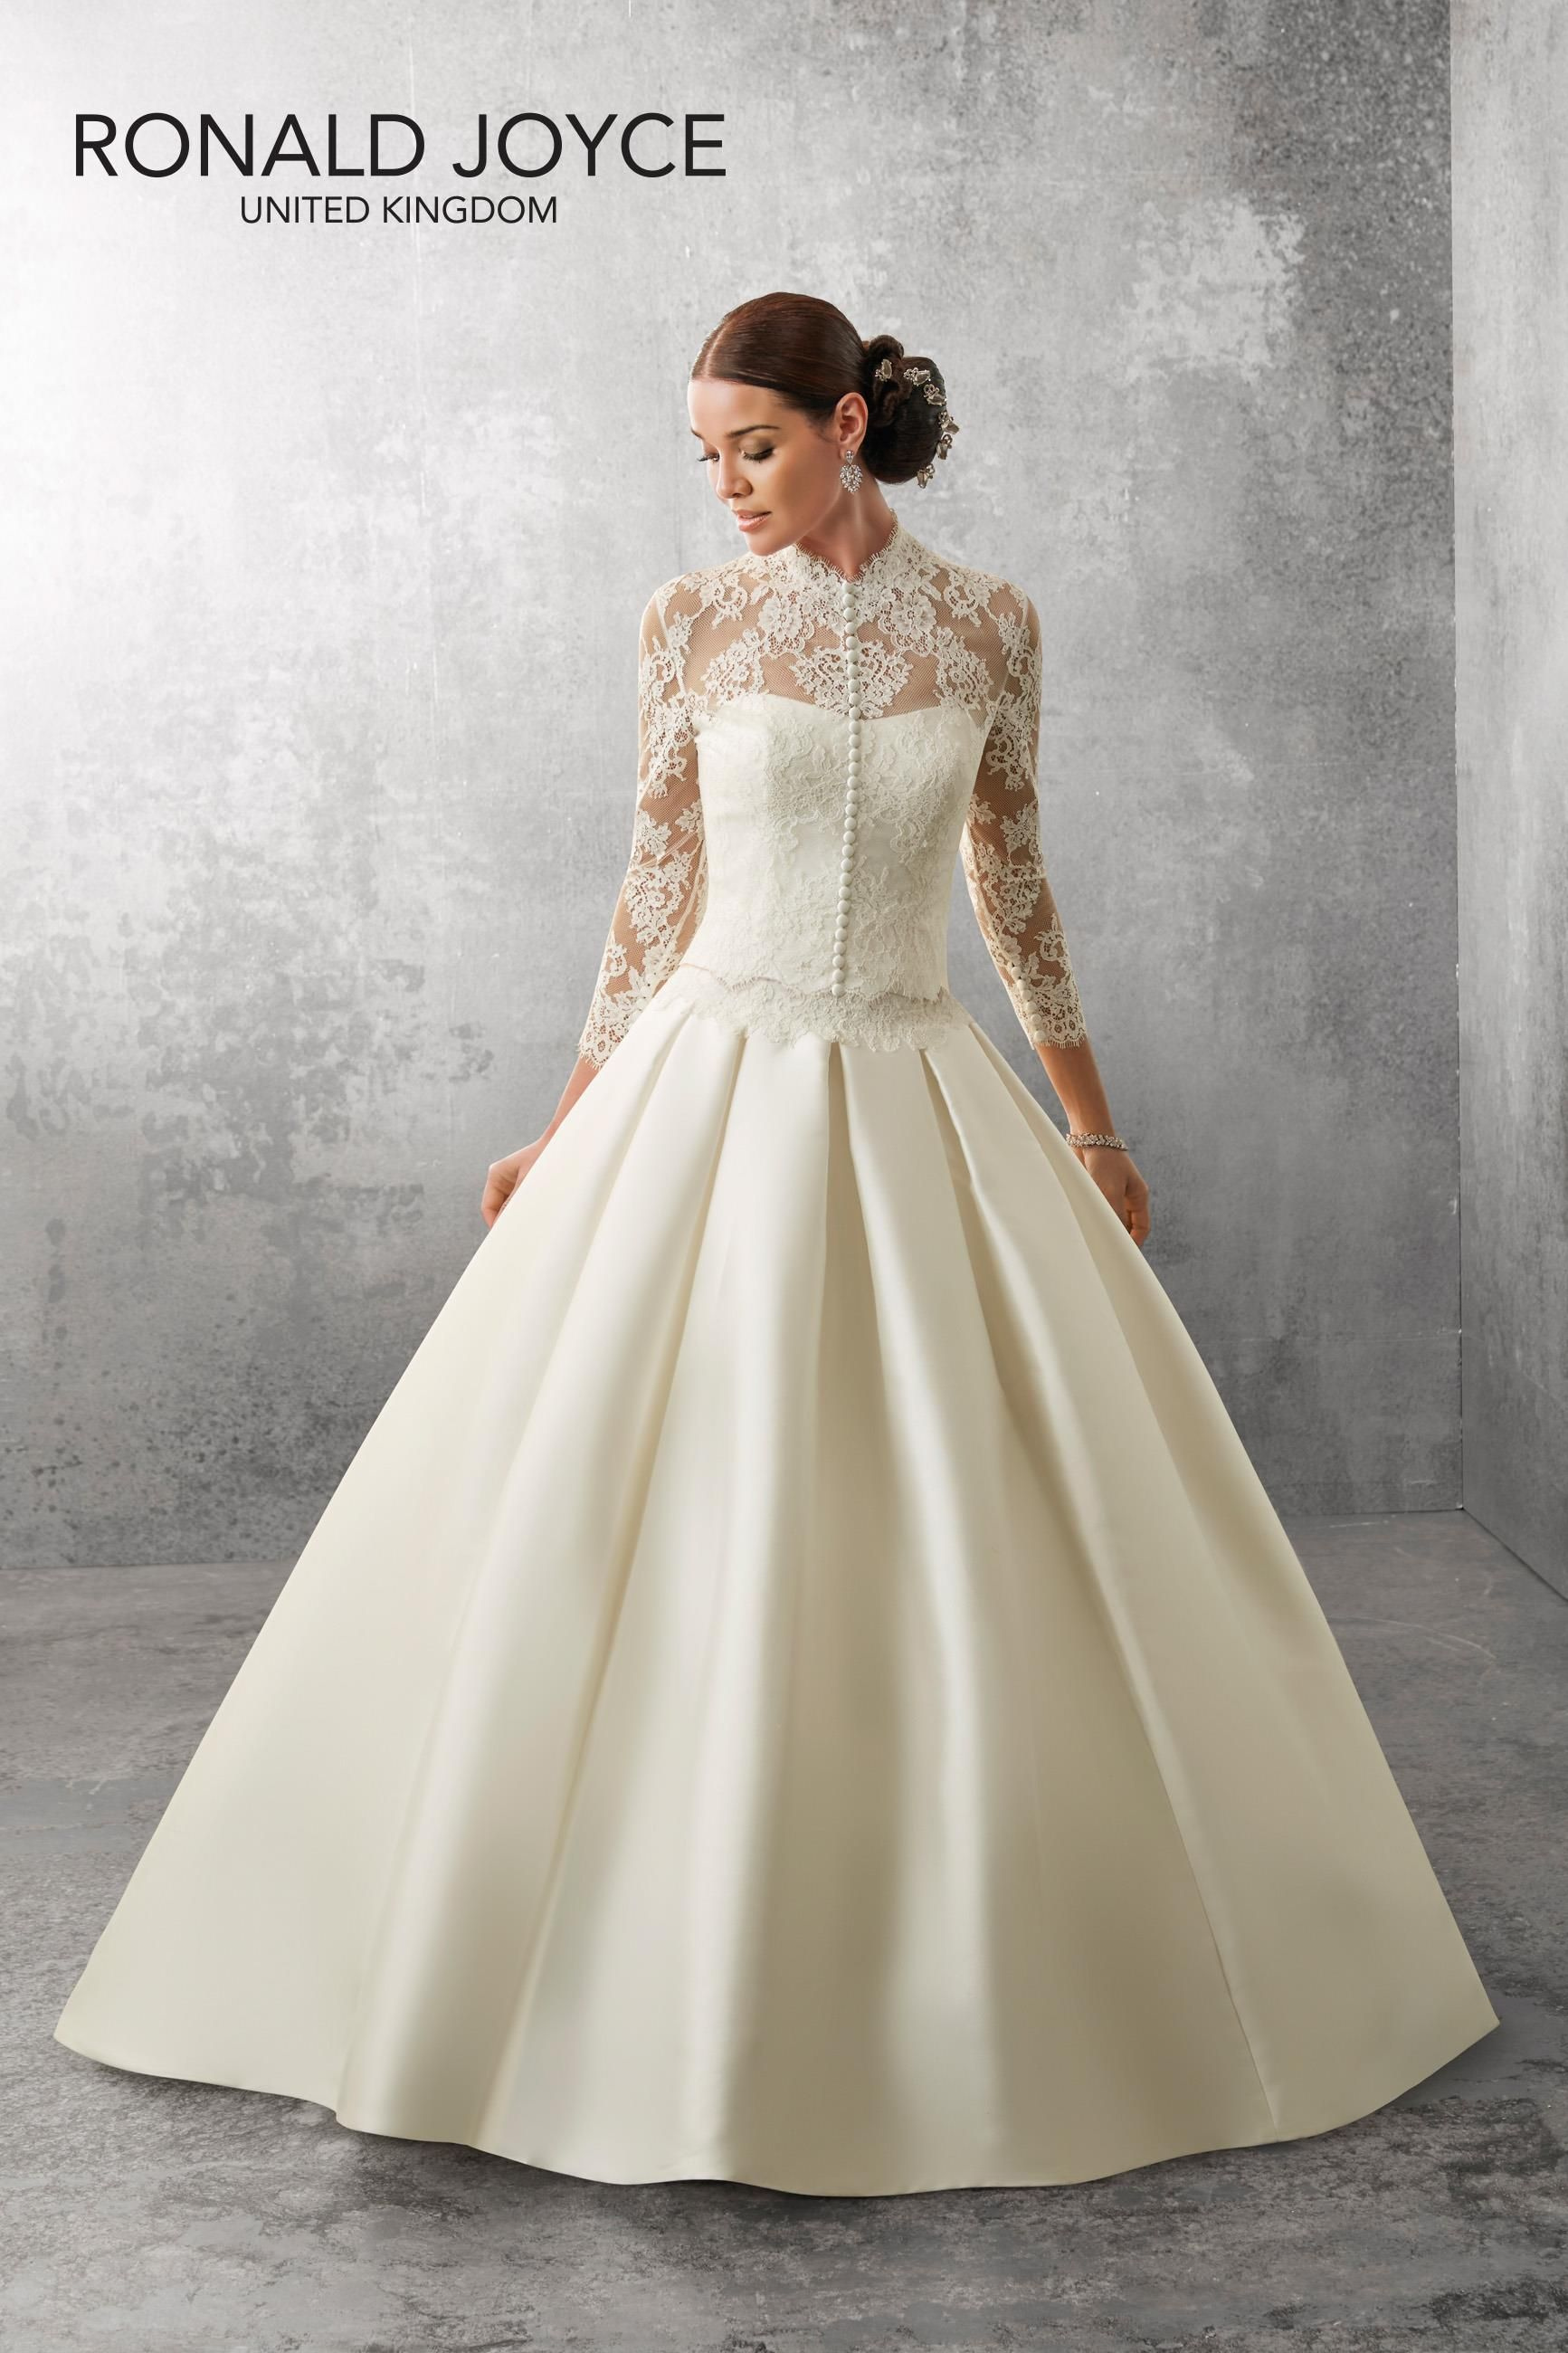 Pin by sue ford on wedding dresses pinterest ronald joyce